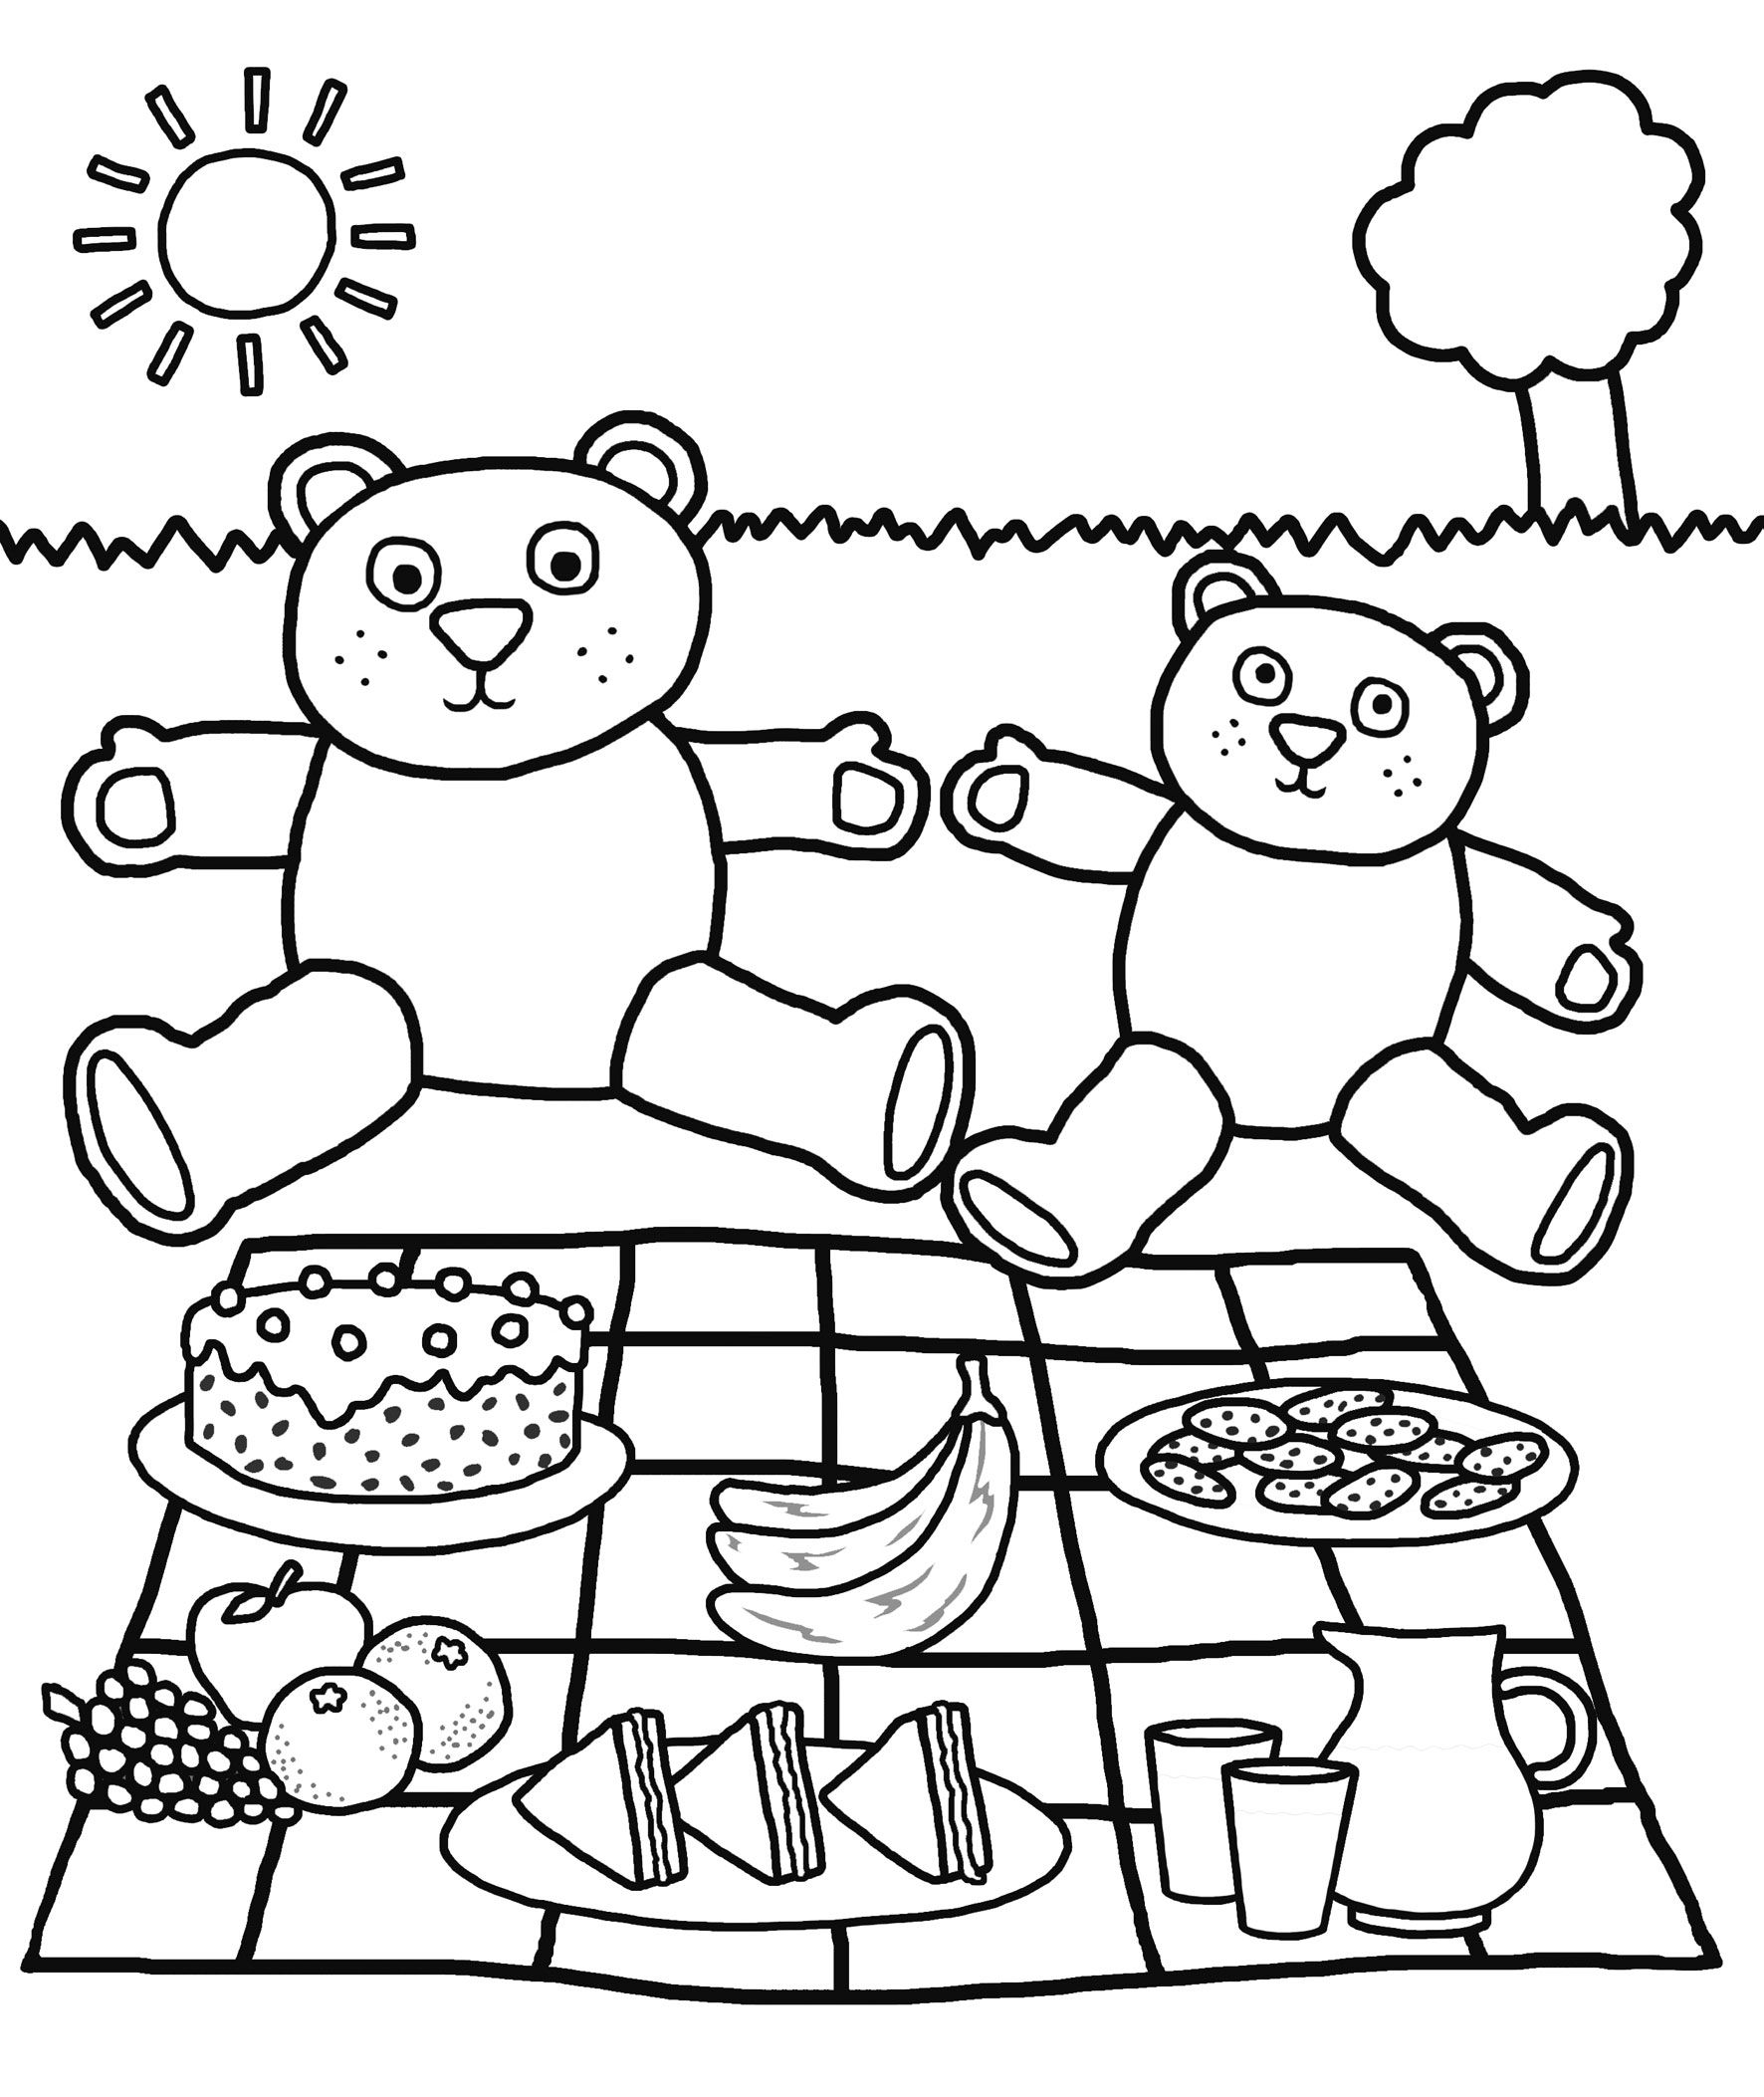 Teddy Bear Picnic Coloring Pages Gallery